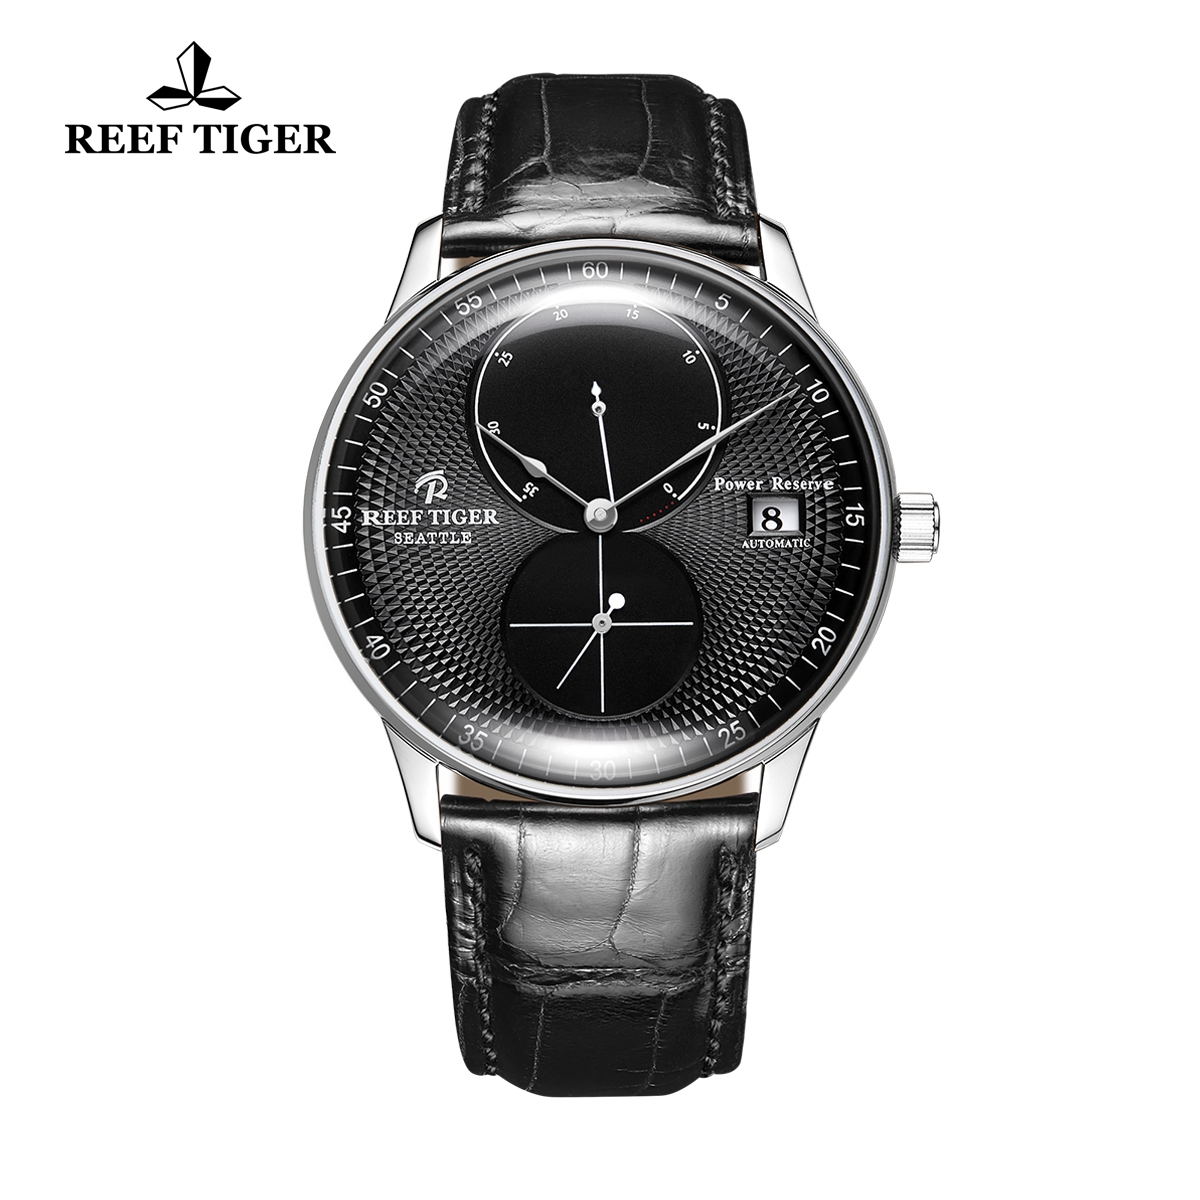 Reef Tiger Seattle Navy Fashion Steel Leather Strap Black Dial Automatic Watch RGA82B0-YBB